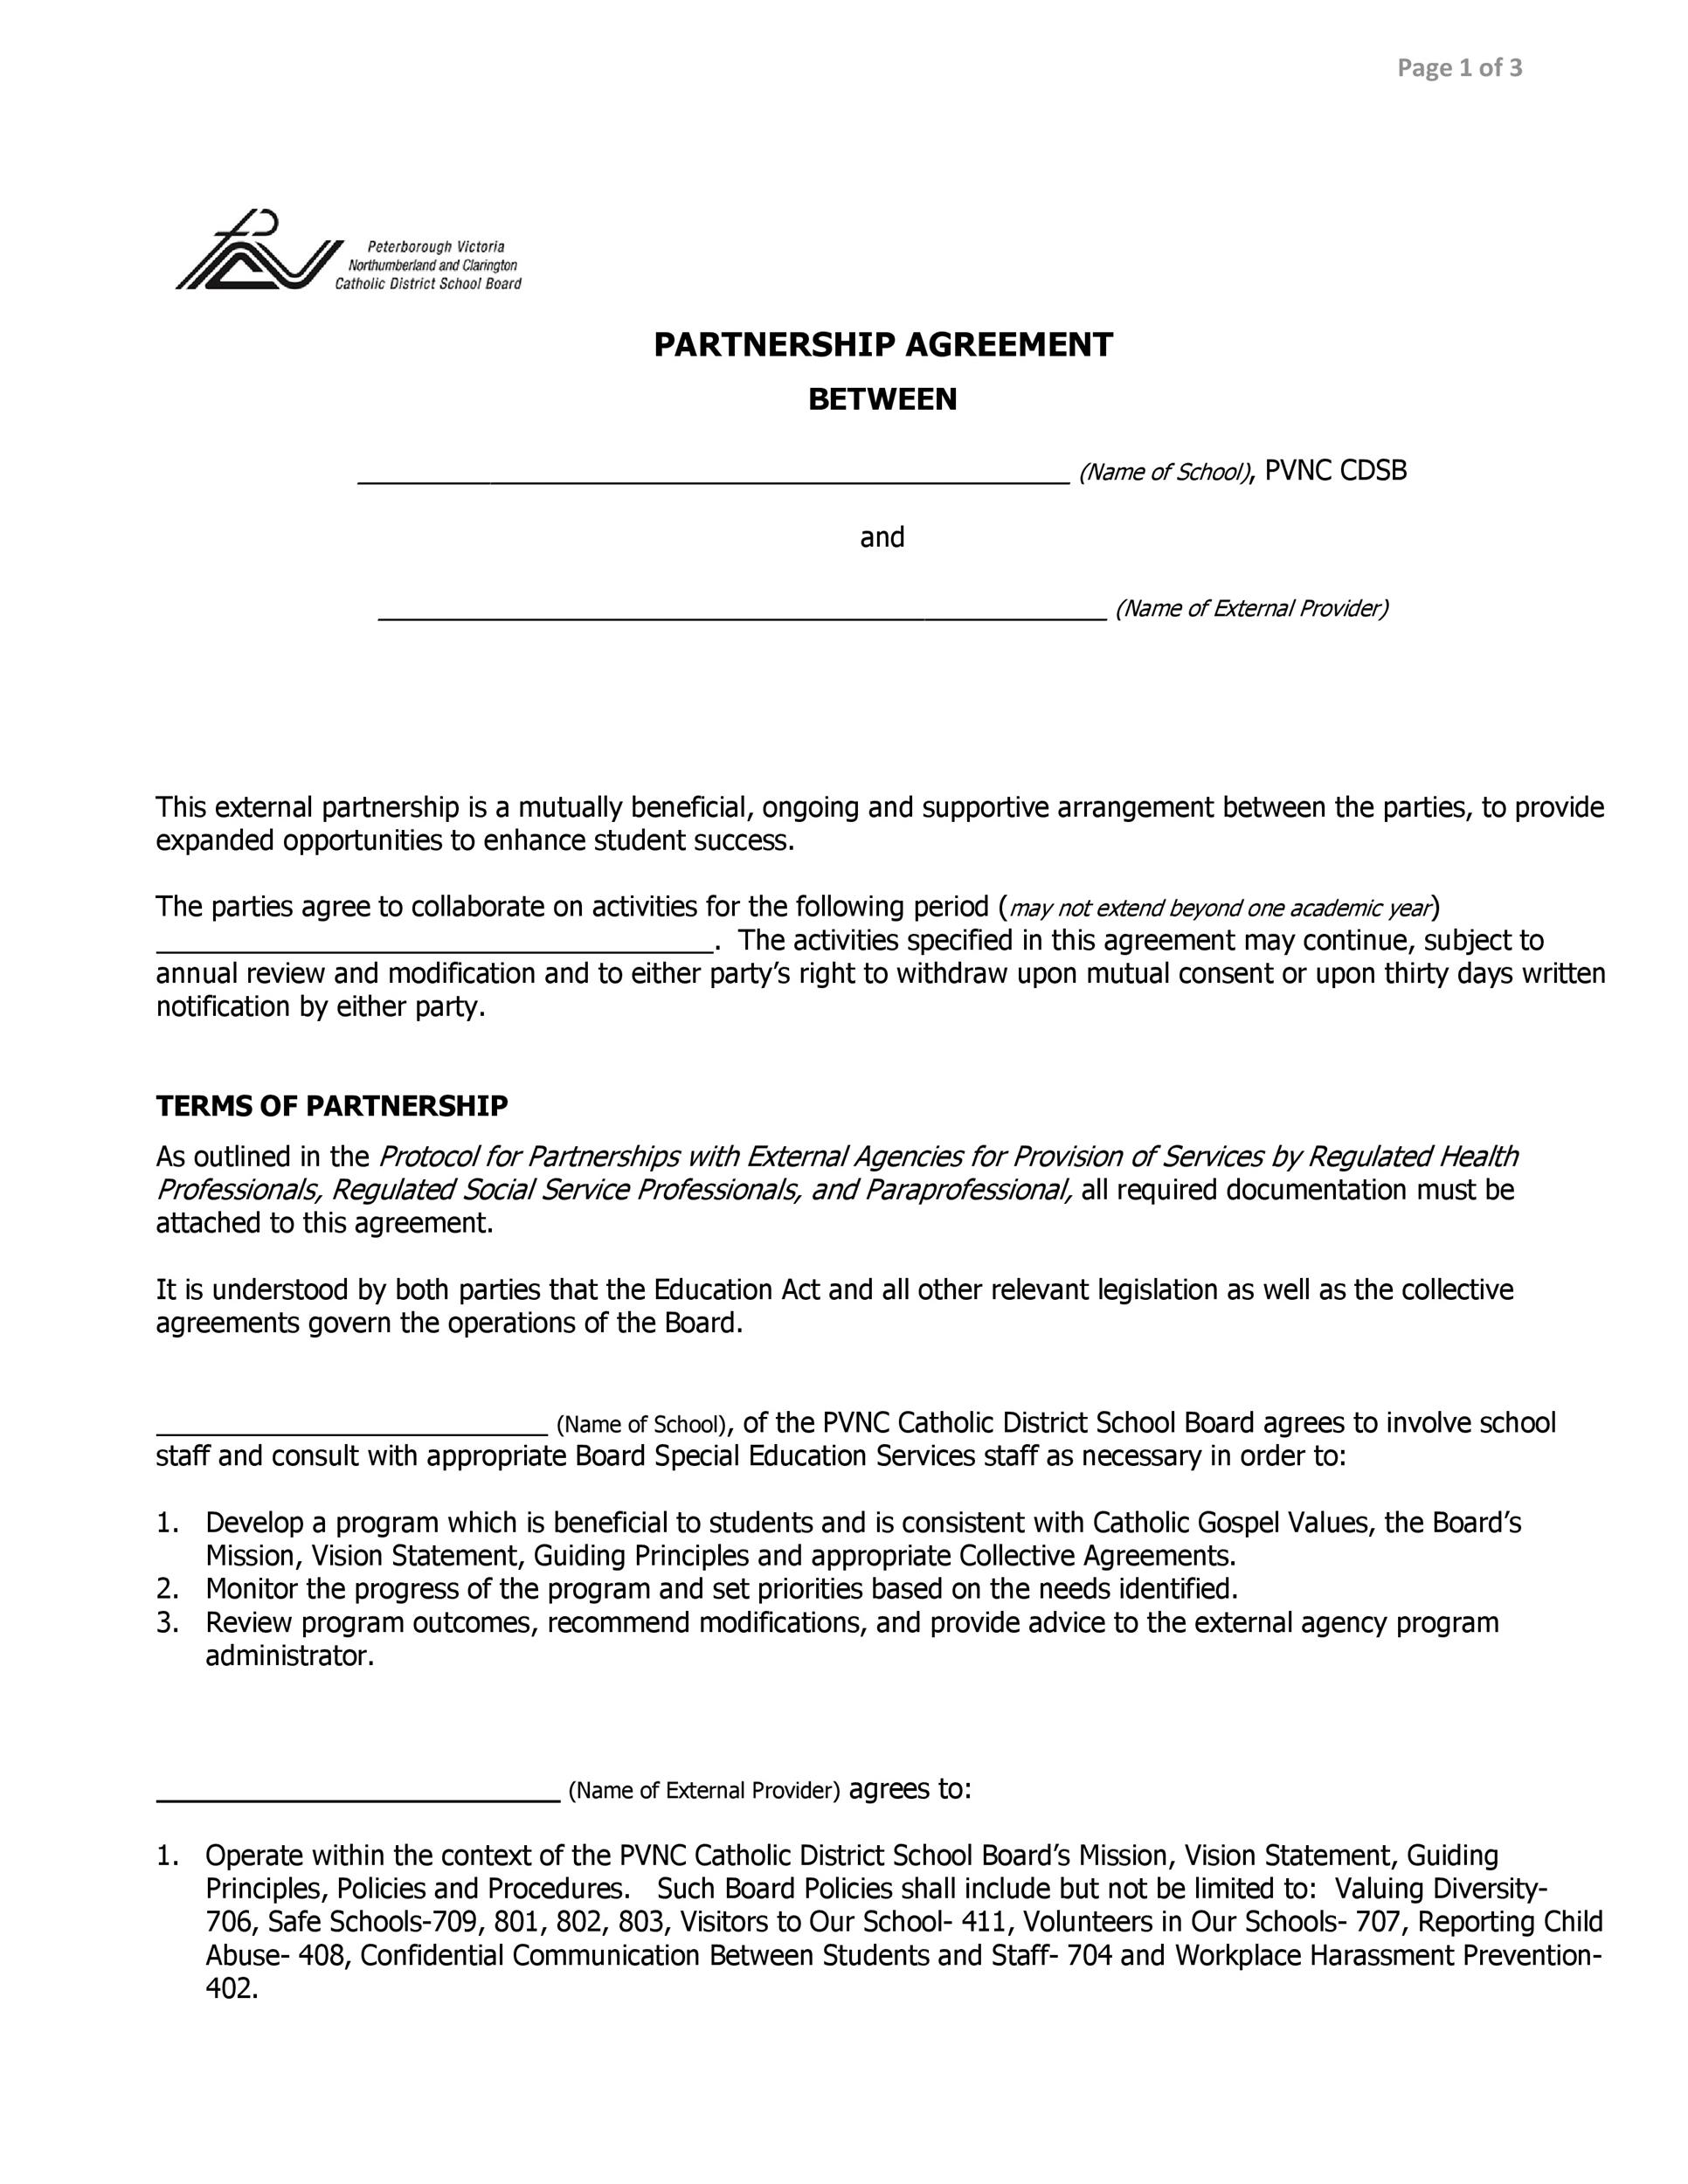 40+ FREE Partnership Agreement Templates (Business, General) - Partnership Agreement Format